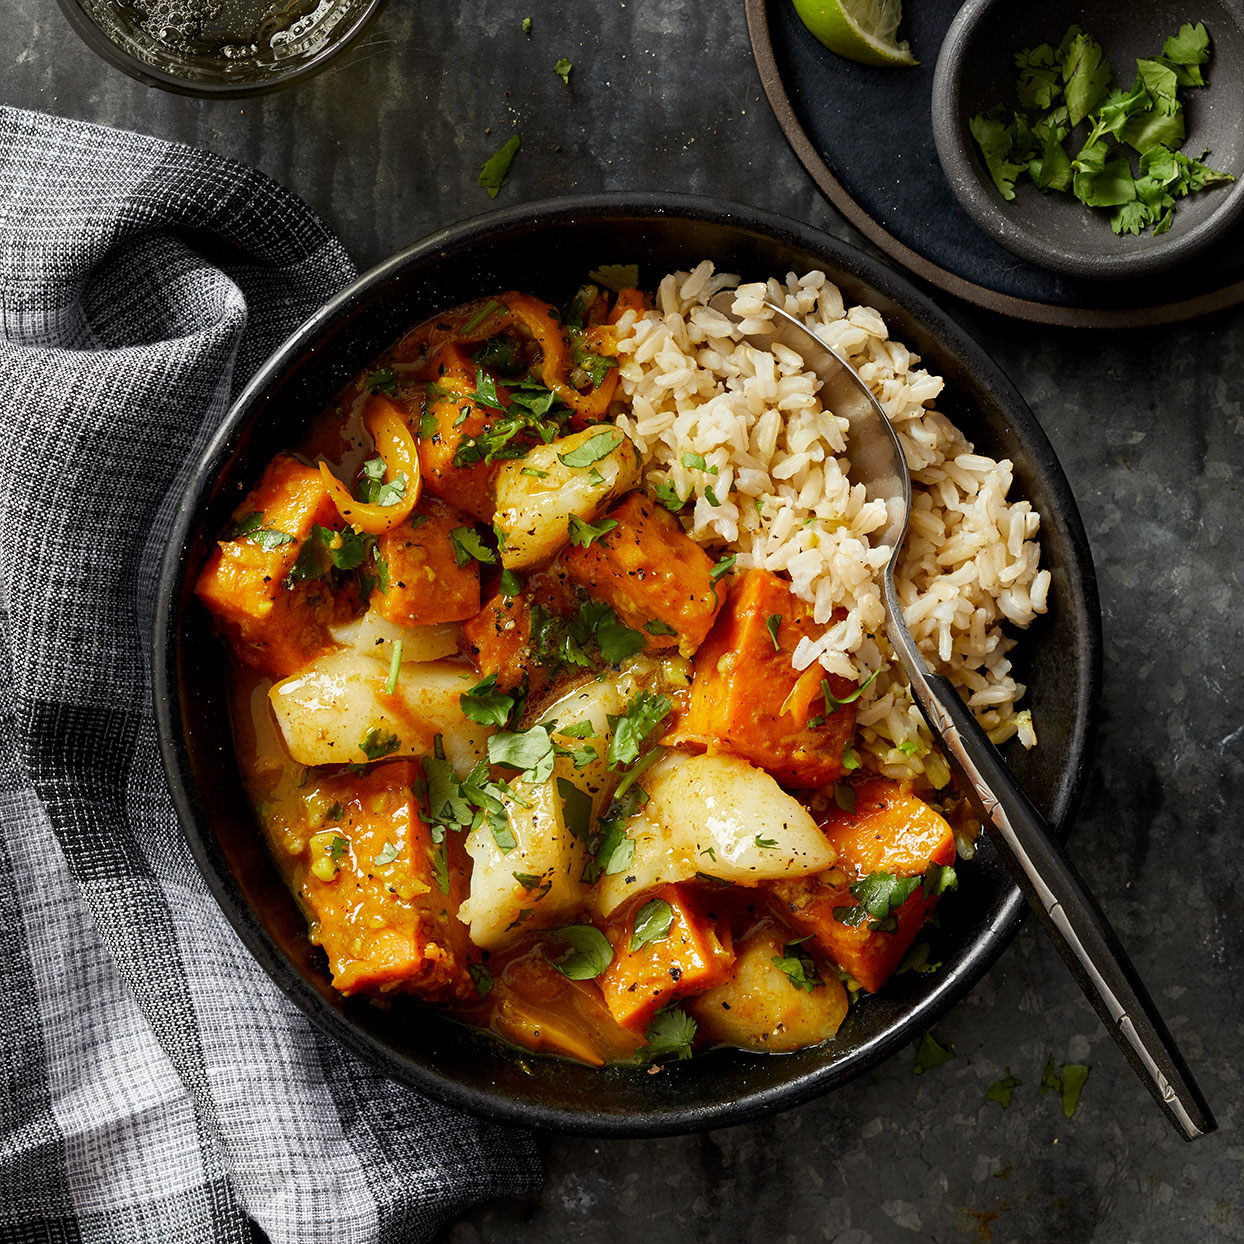 This hearty coconut curry is warm and comforting, thanks to tender sweet potatoes and a hint of spice. This easy curry recipe can be on the table in less than an hour. Source: Diabetic Living Magazine, Winter 2020